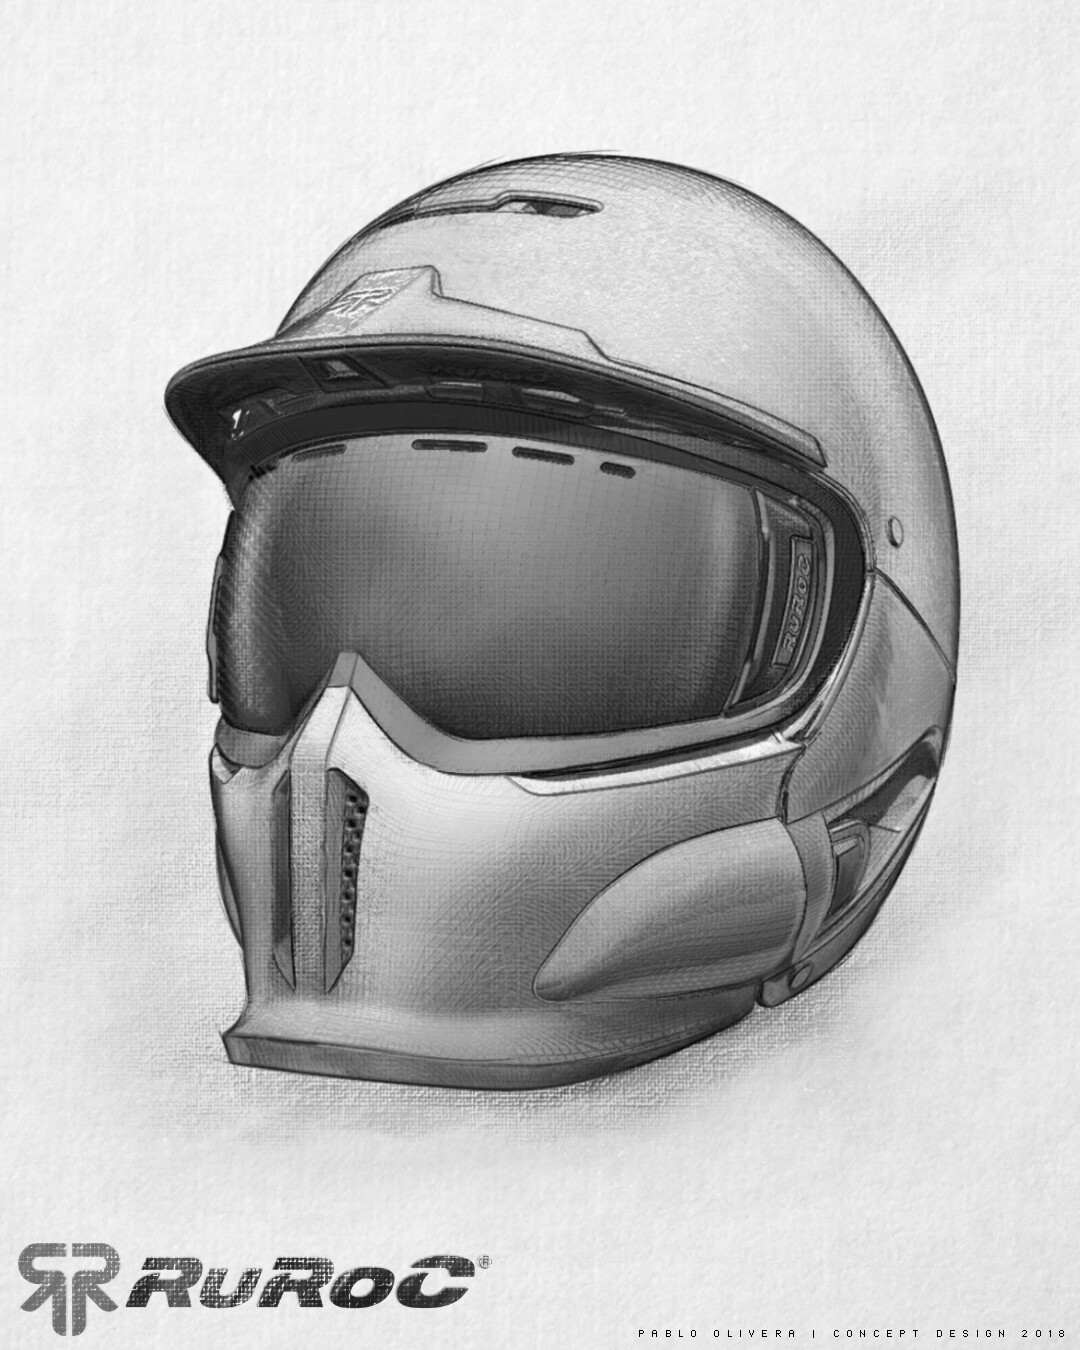 Pablo olivera helmet ruroc limited edition drawing sketch 01